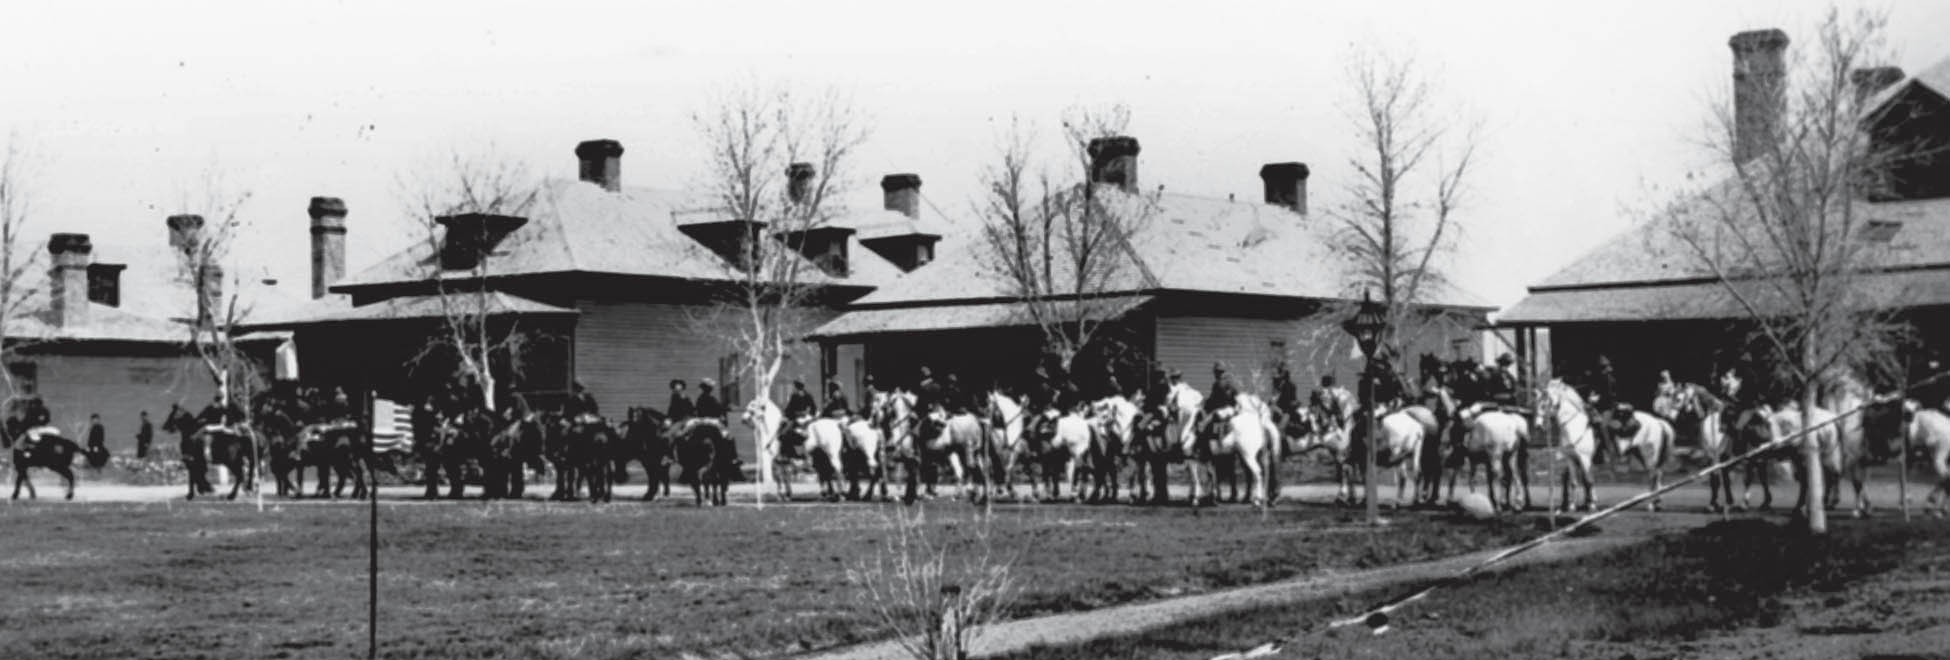 The U.S. Cavalry on Parade at Fort Yates